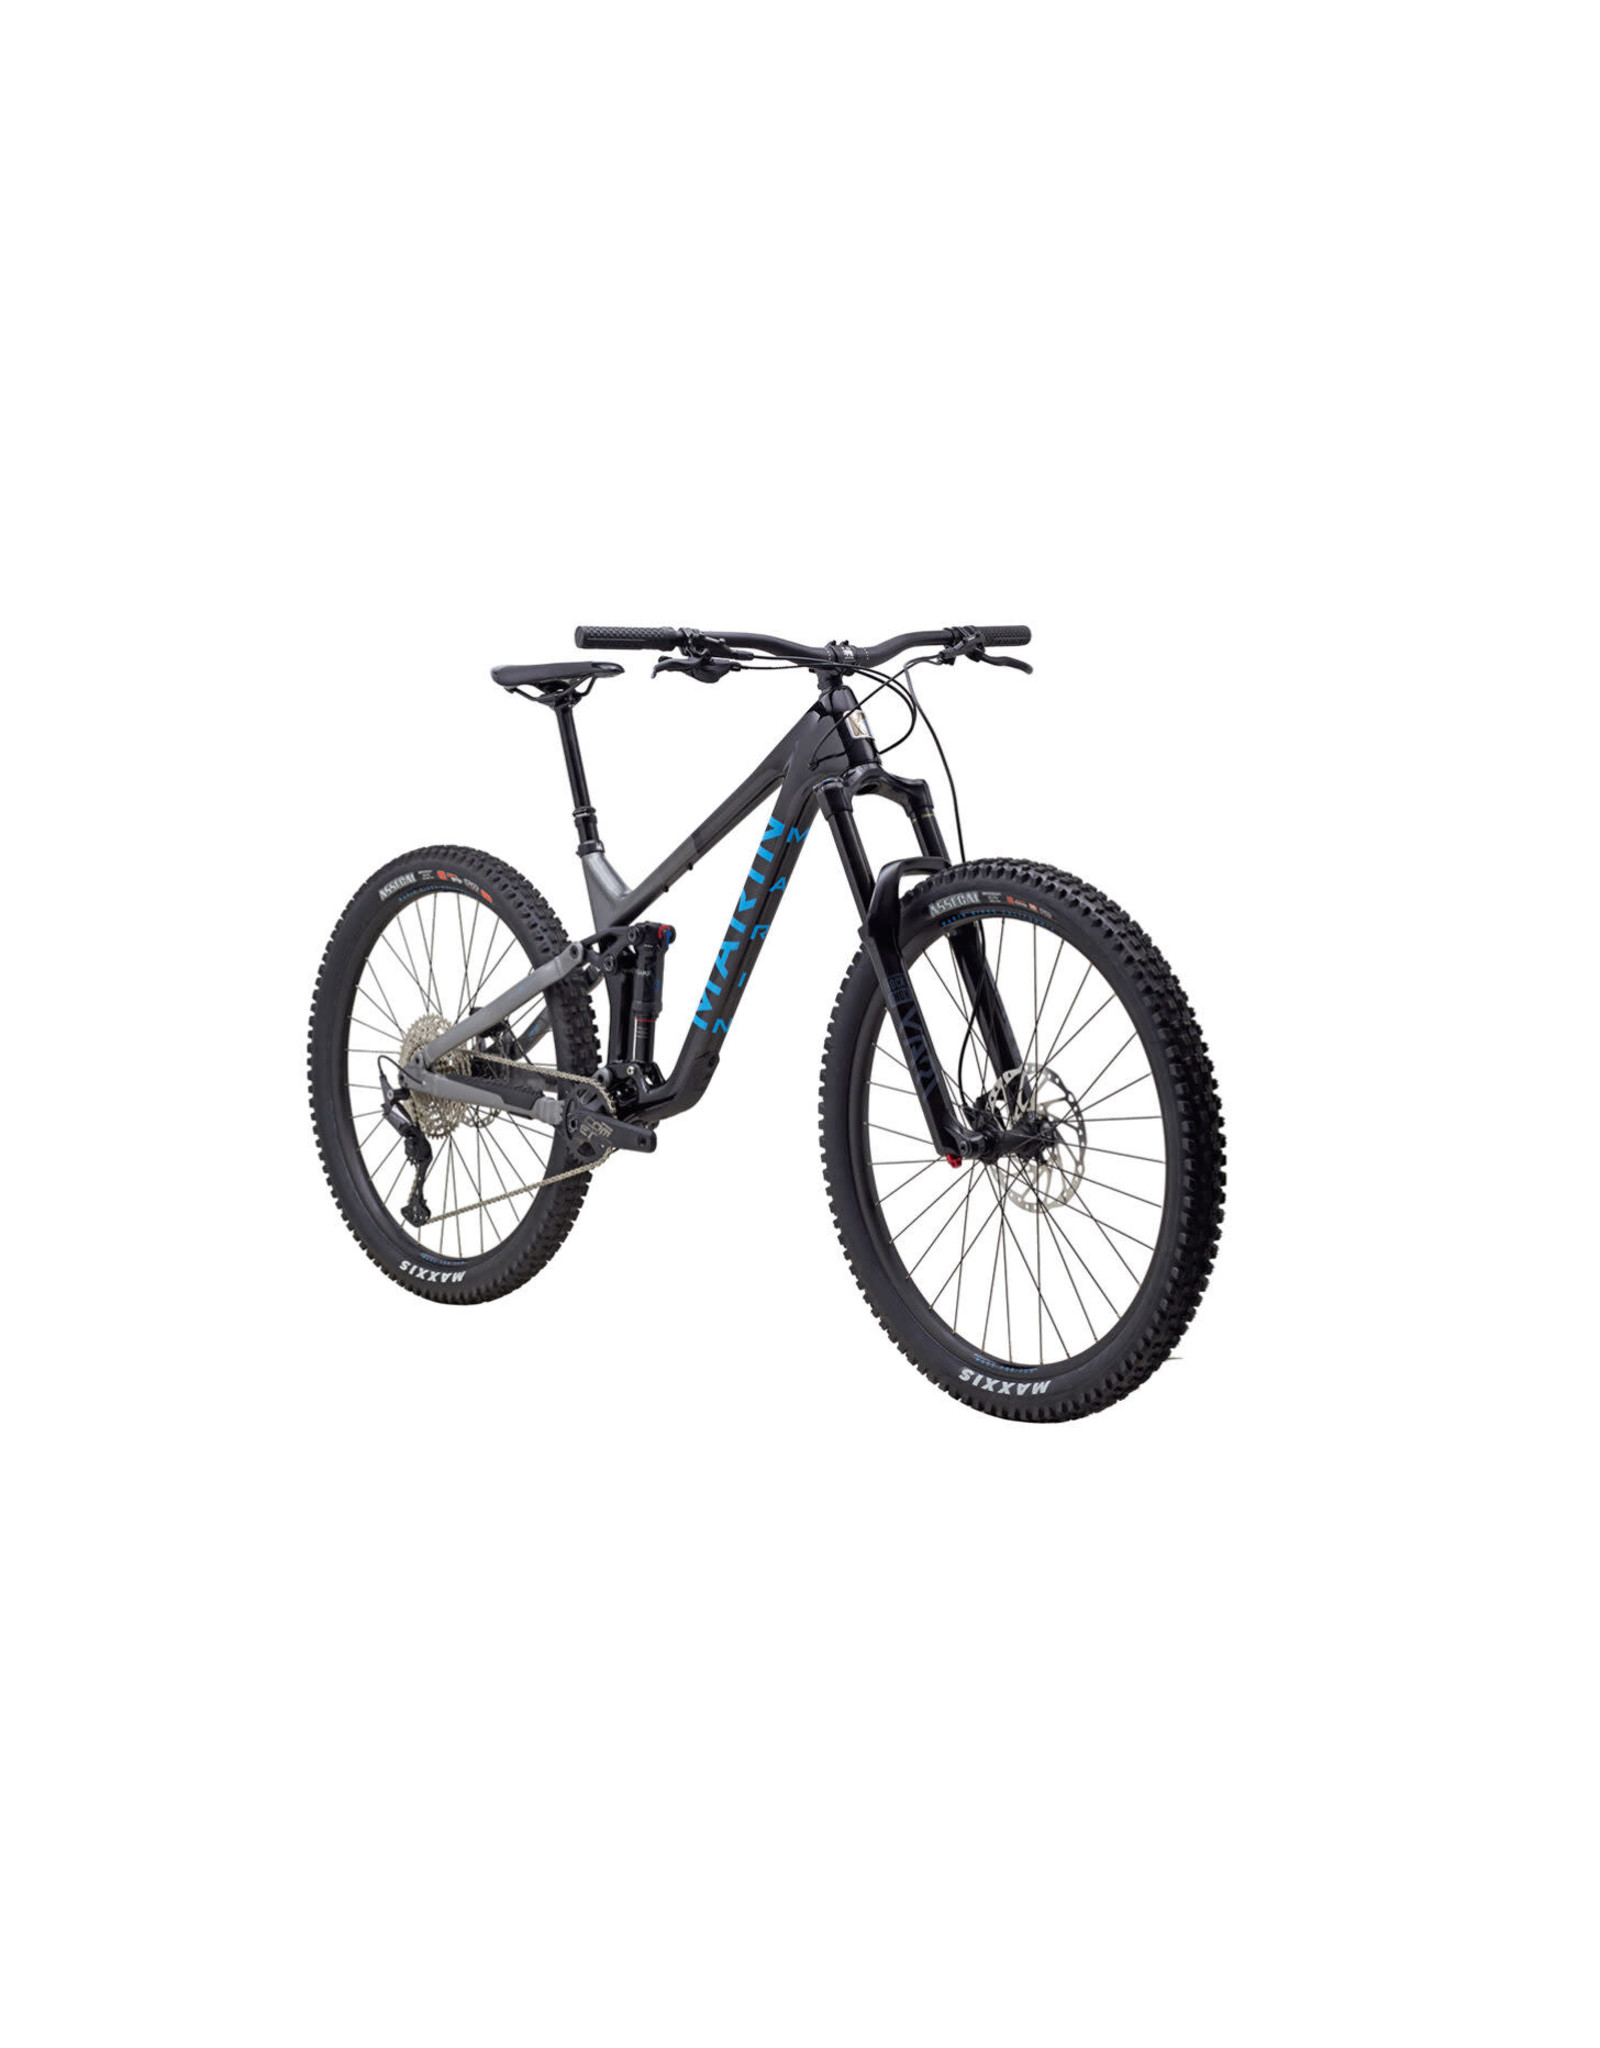 Marin Bikes 2021 Marin Alpine Trail Carbon 1 (Coming February 2021!)